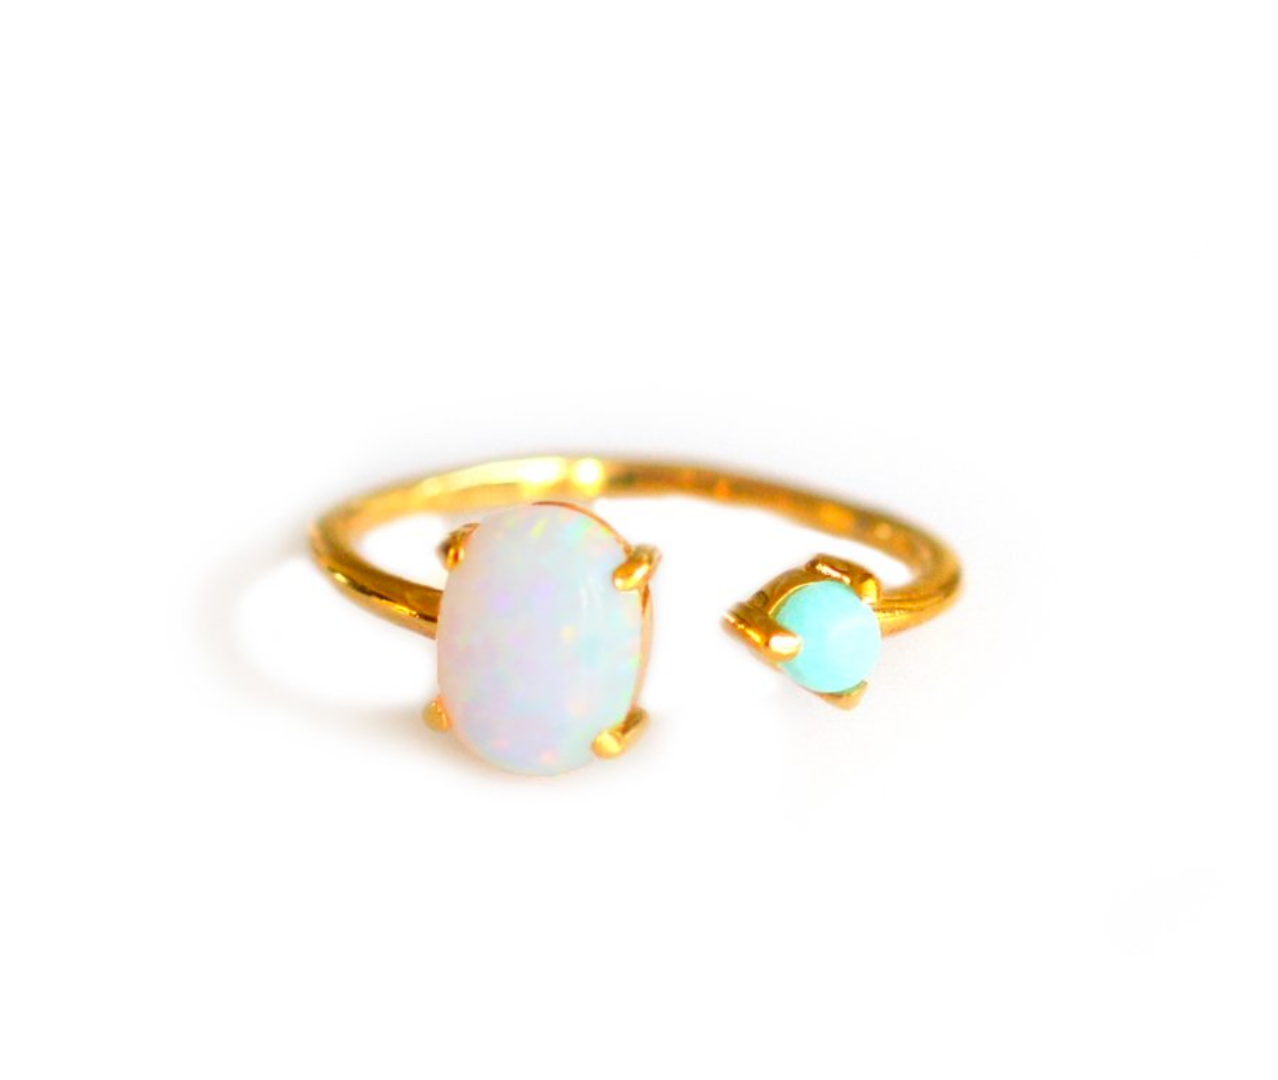 Turquoise and Opal Dual Ring